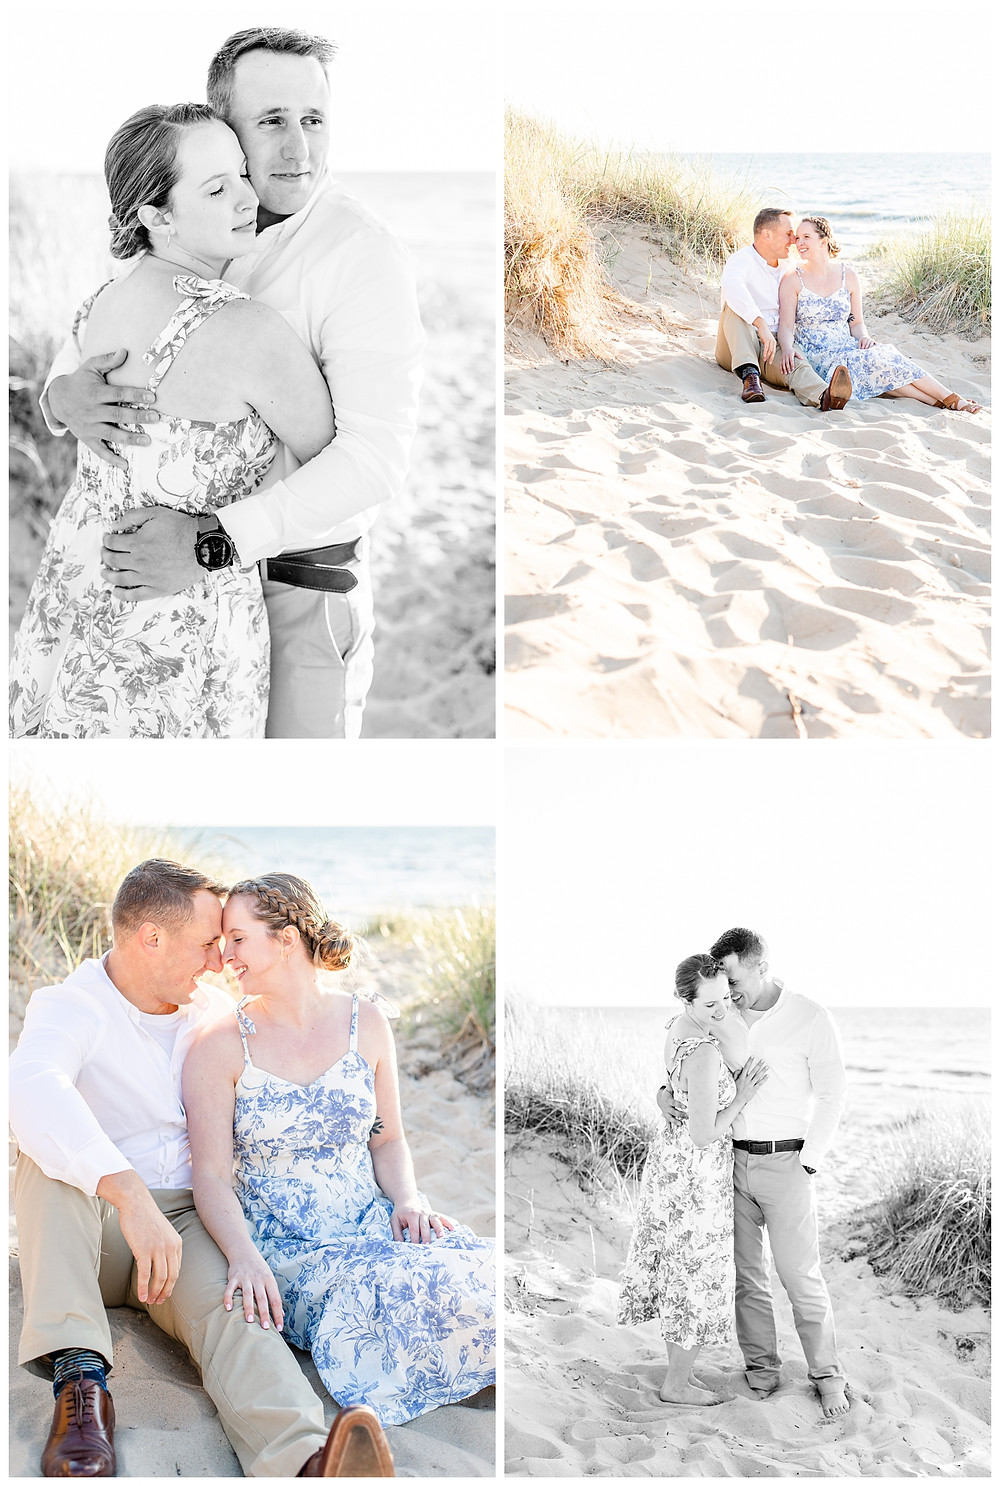 Josh and Andrea wedding photography husband and wife photographer team michigan pictures south haven engagement pictures session beach photo shoot fiance sitting hugging standing beach